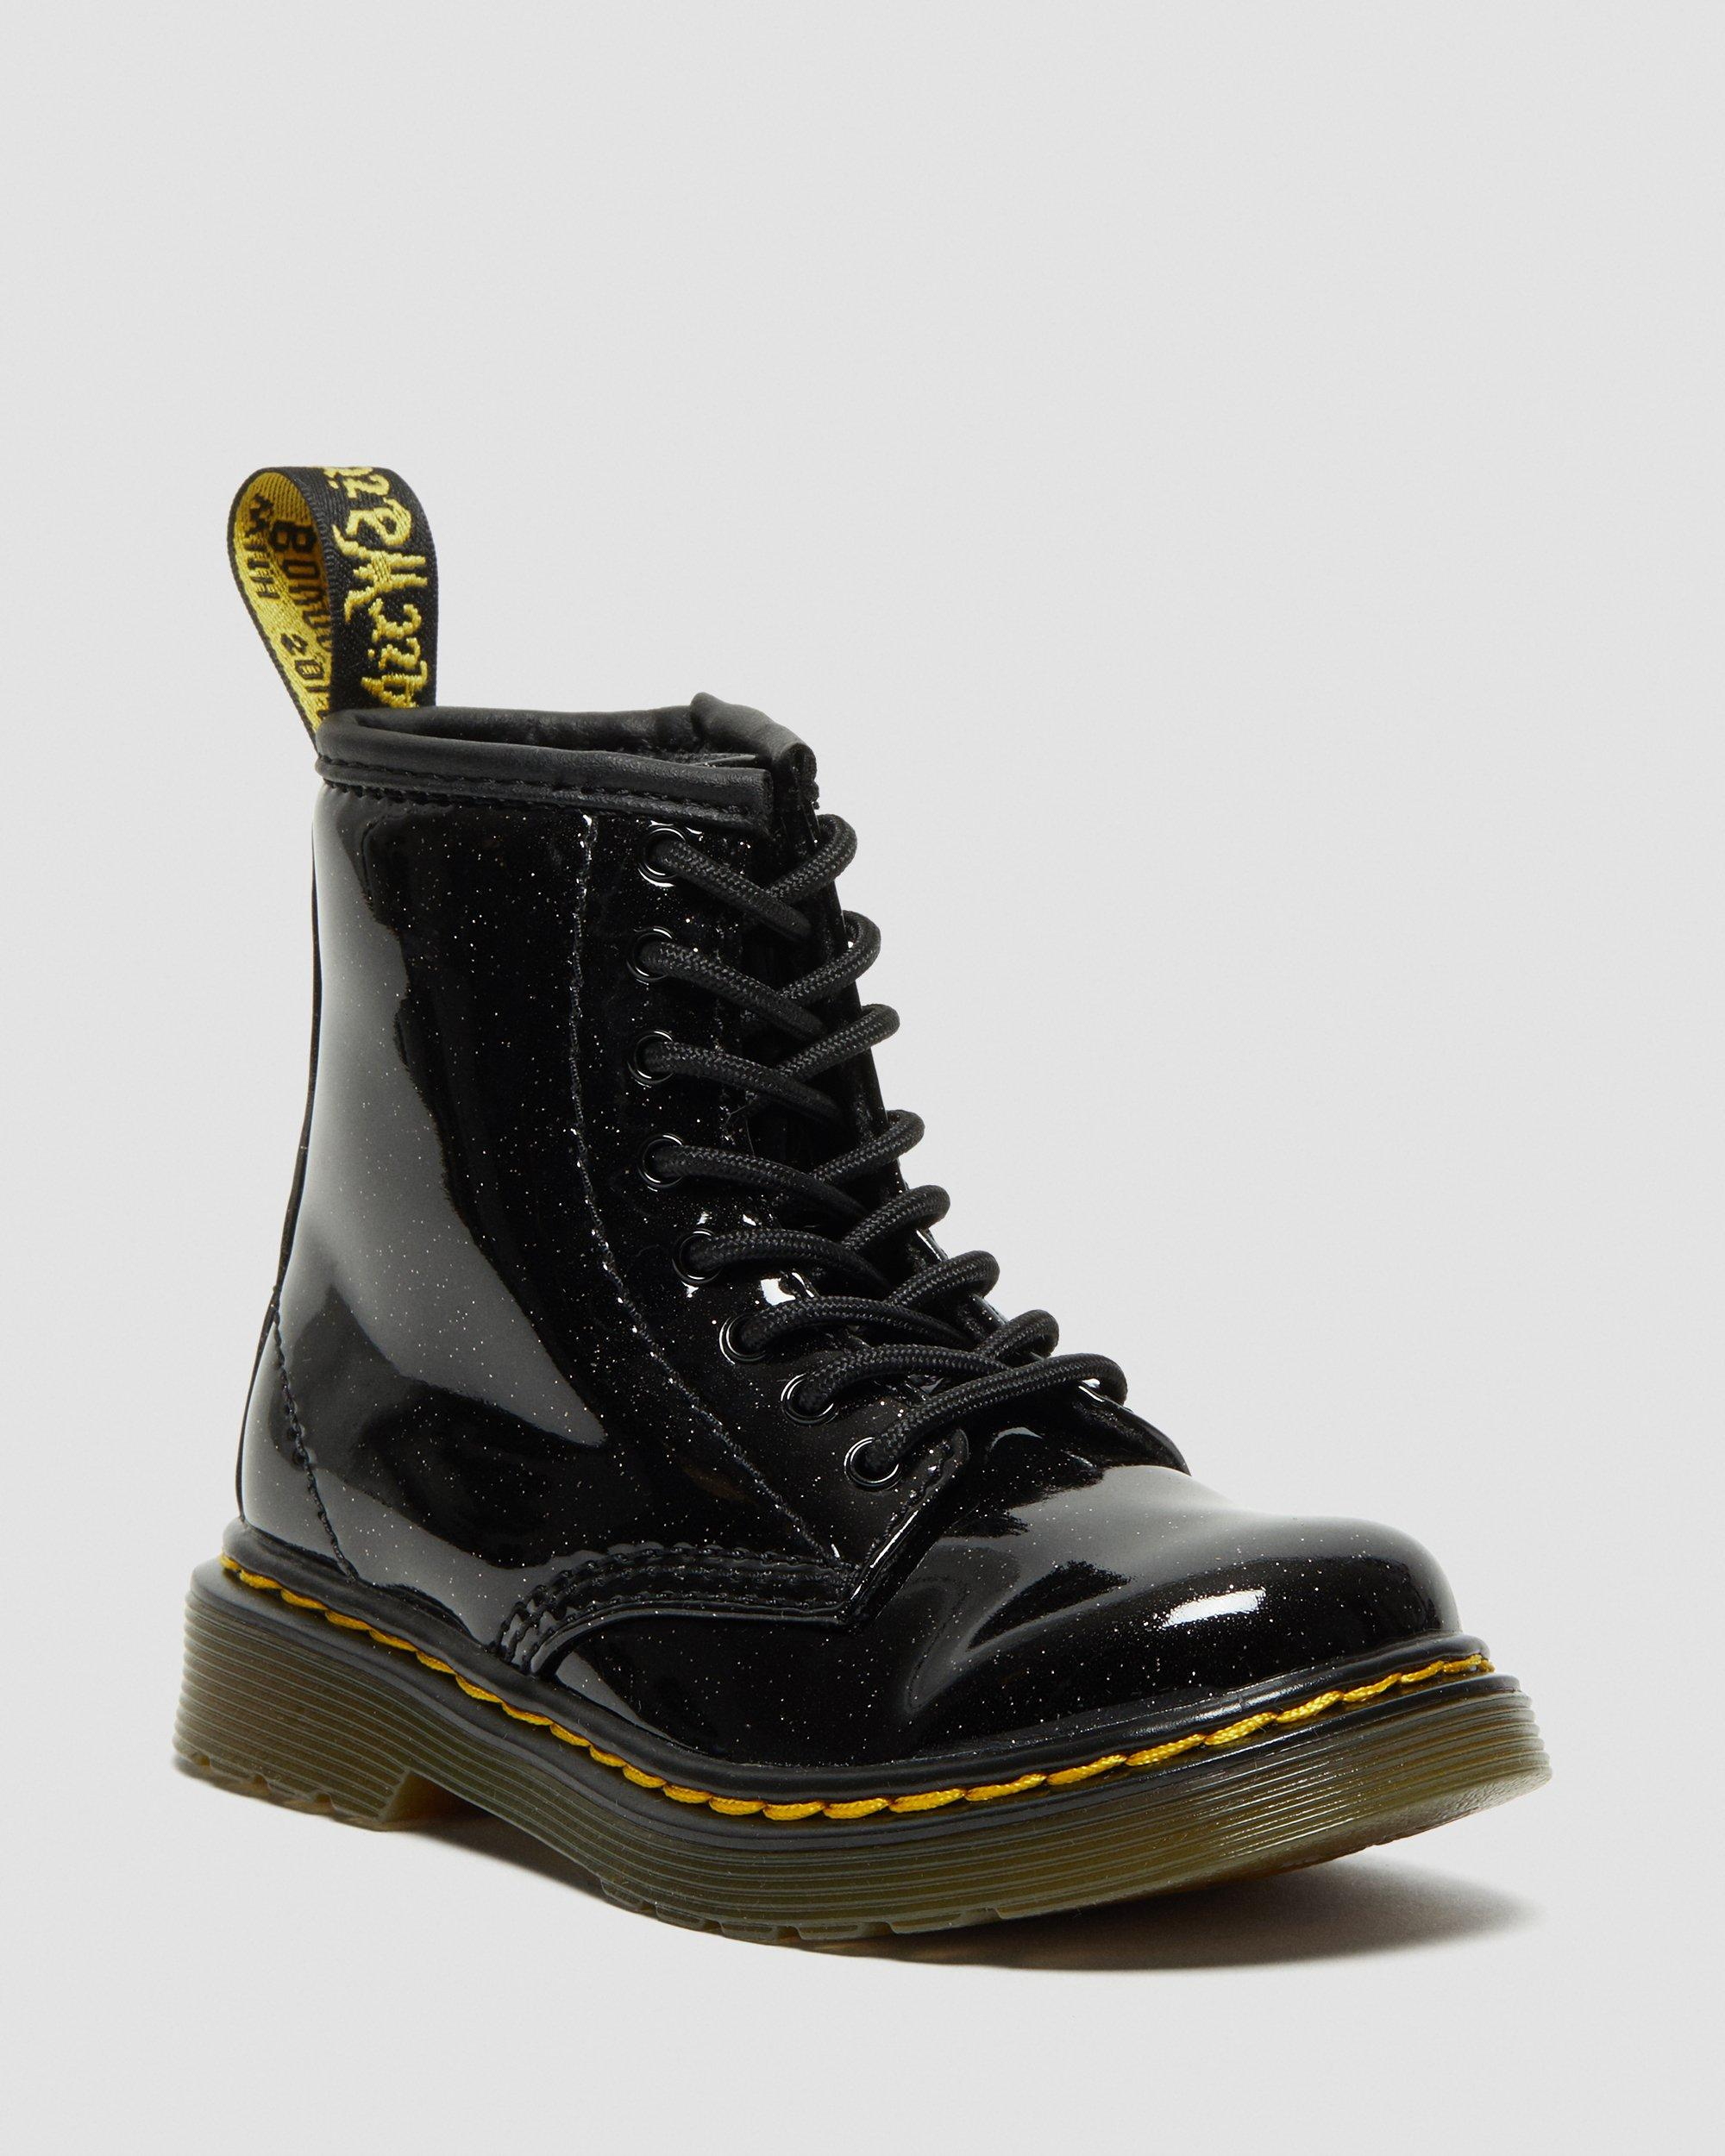 DR MARTENS TODDLER 1460 GLITTER LACE UP BOOTS